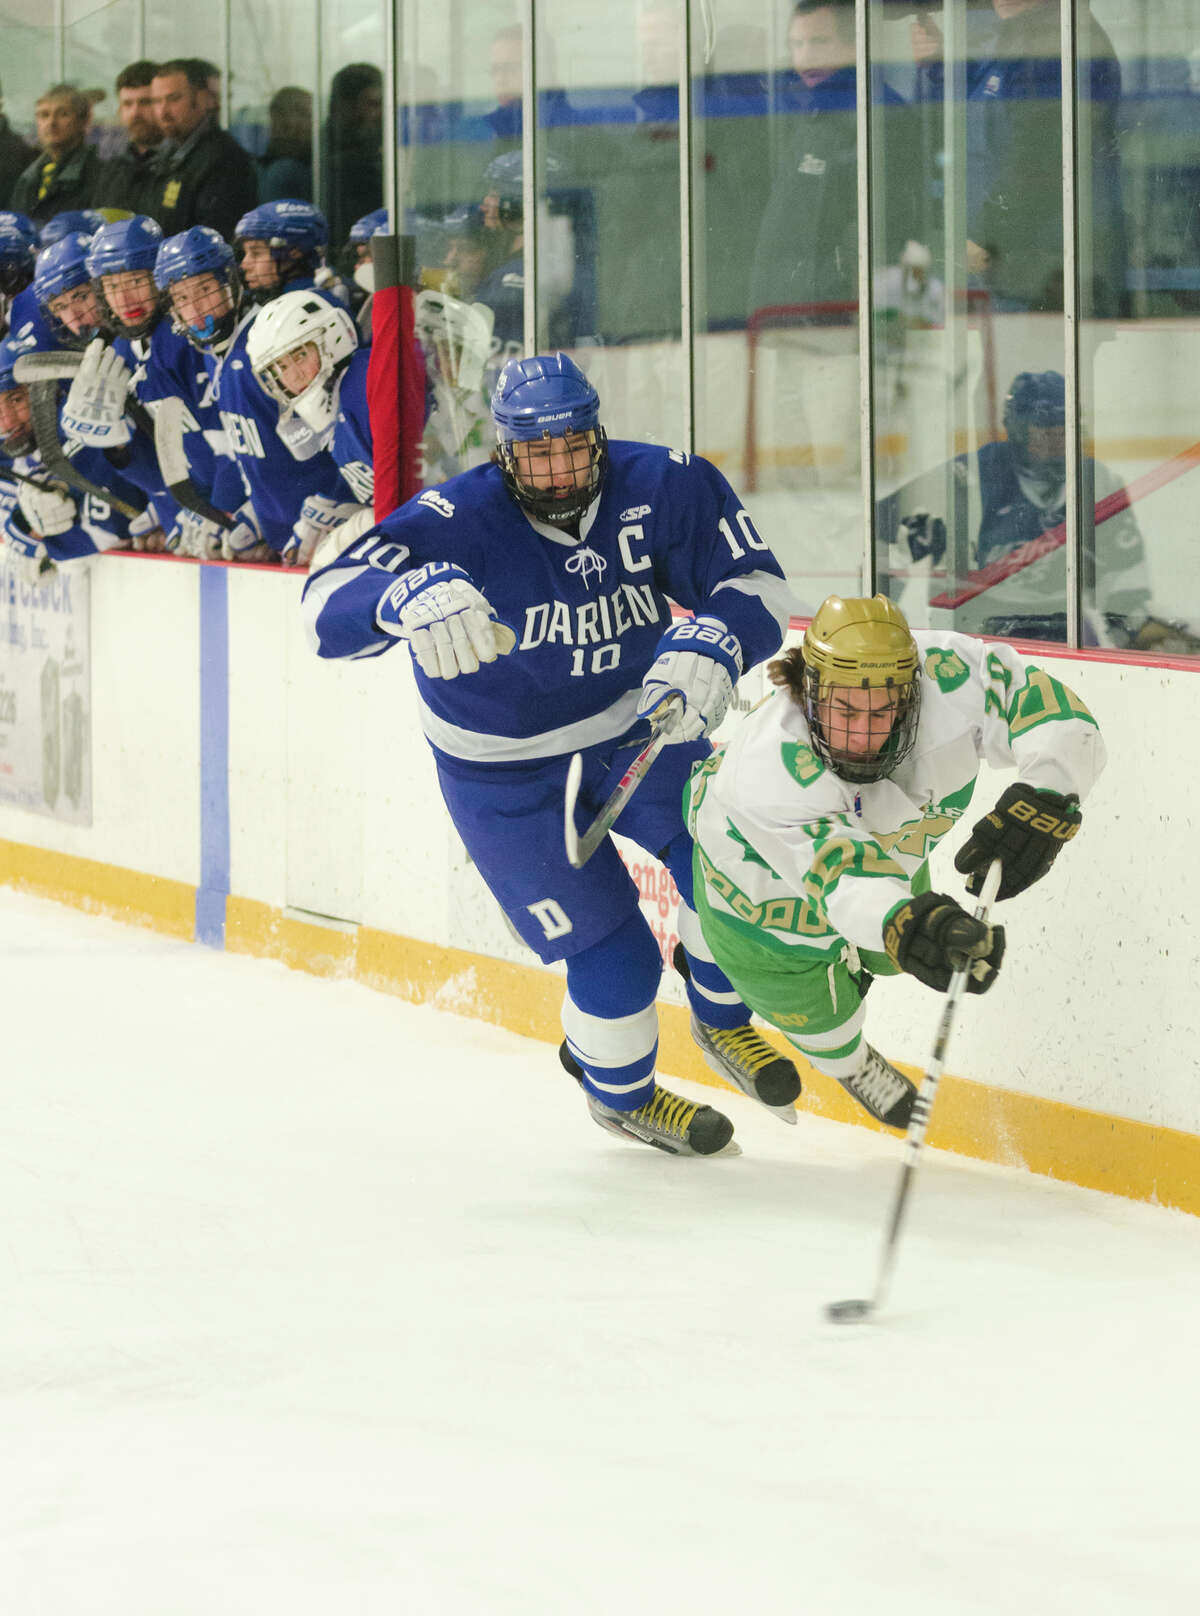 Notre Dame West Haven's Kyle Lynch (20) becomes airborne as Darien's Jack Massie (10) battles for control of the puck during the boys ice hockey game at Bennett Skating Rink in West Haven on Monday, Feb. 17, 2014.